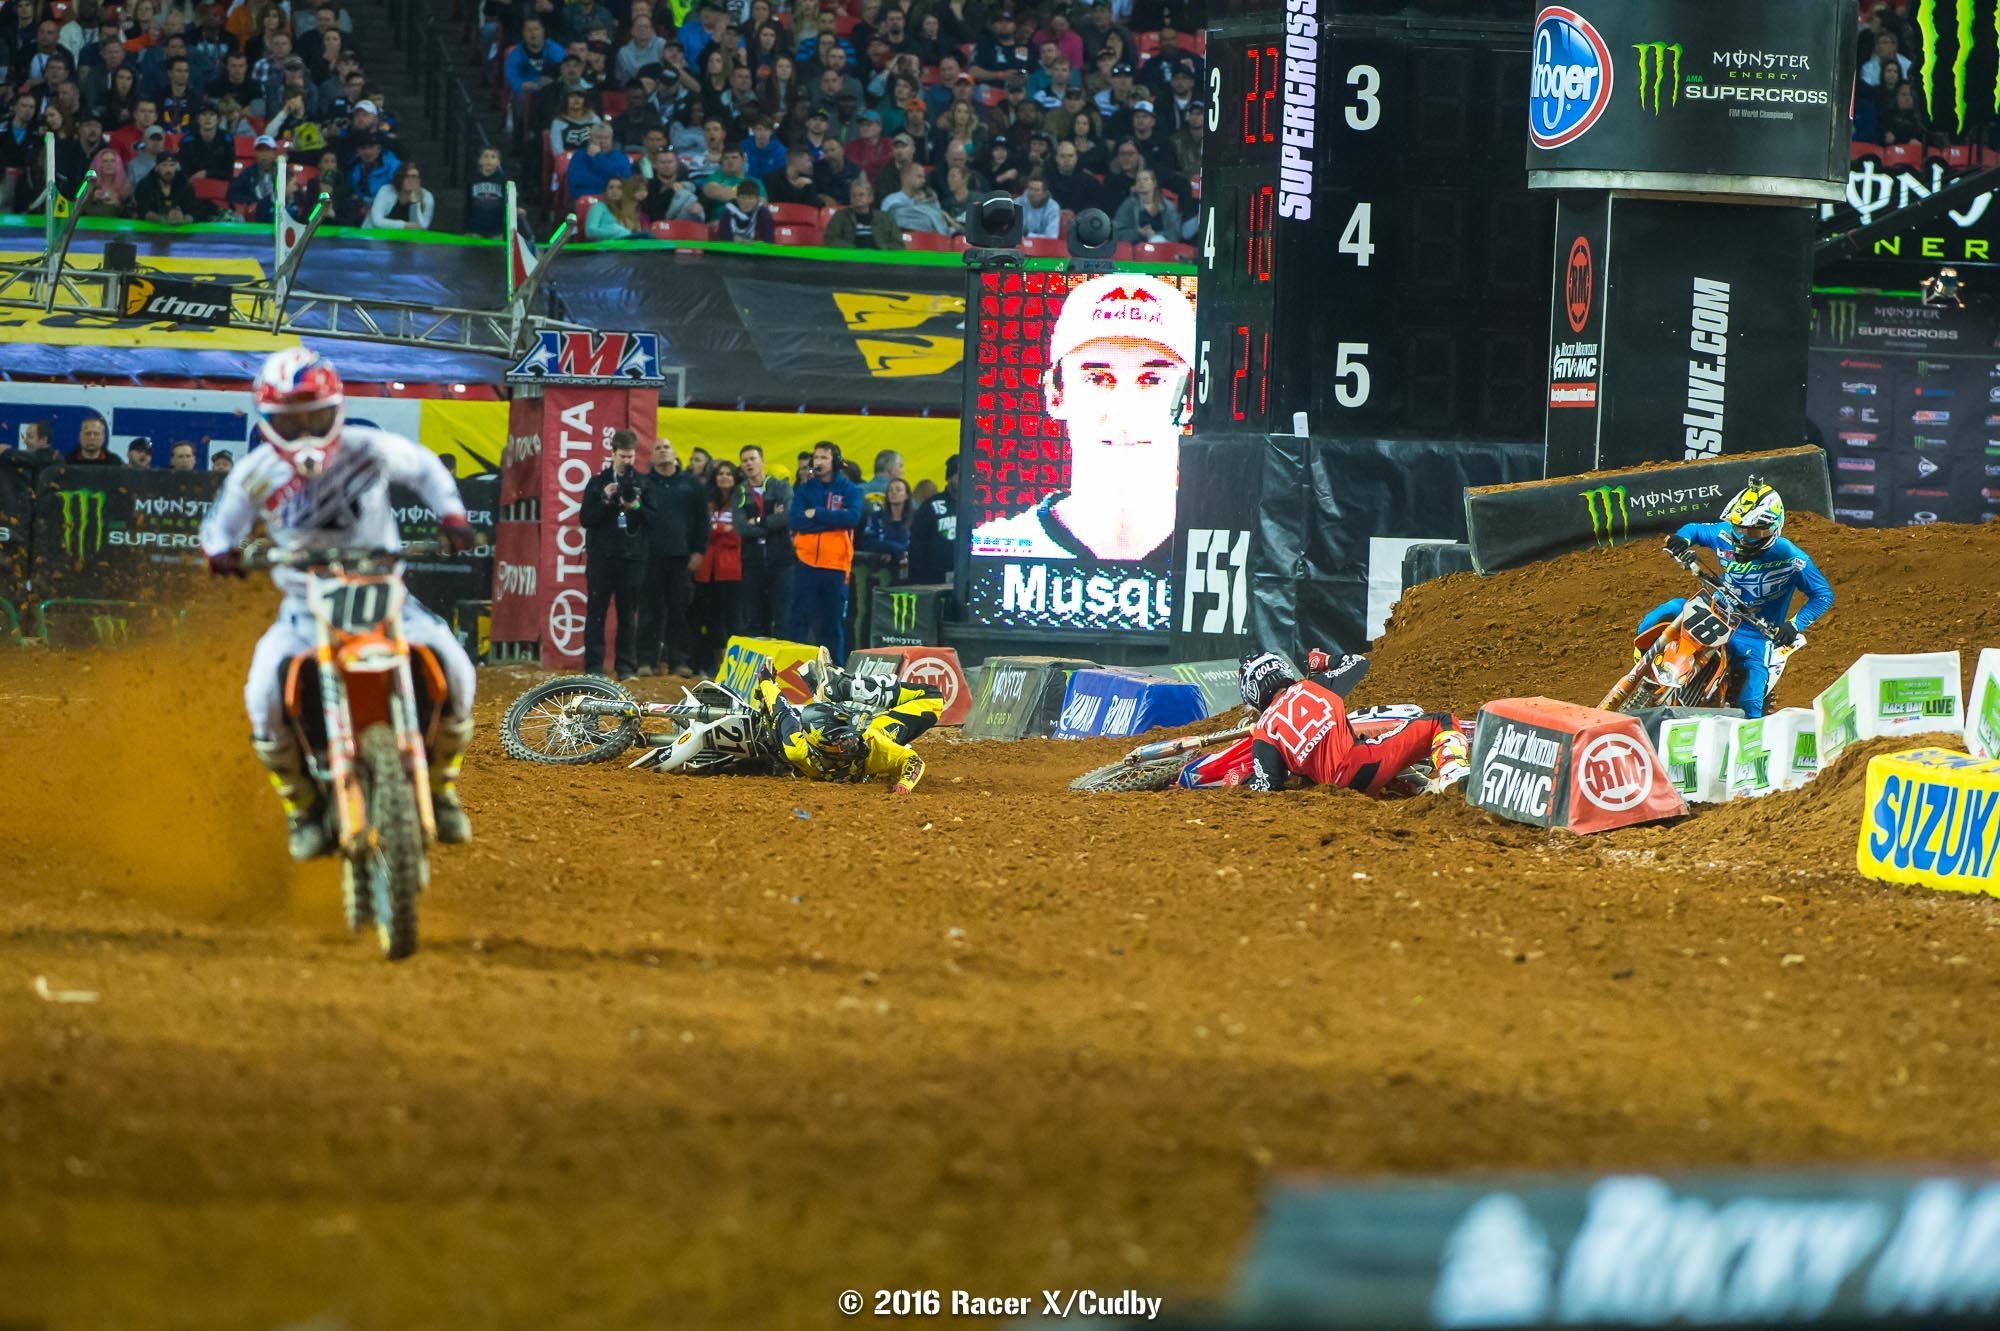 If the battle for the win hadn't been so tense and exciting, everyone would have been talking about all the drama between Cole Seely and Jason Anderson. This photo is from early in the race, but Anderson took Seely down on the final lap.